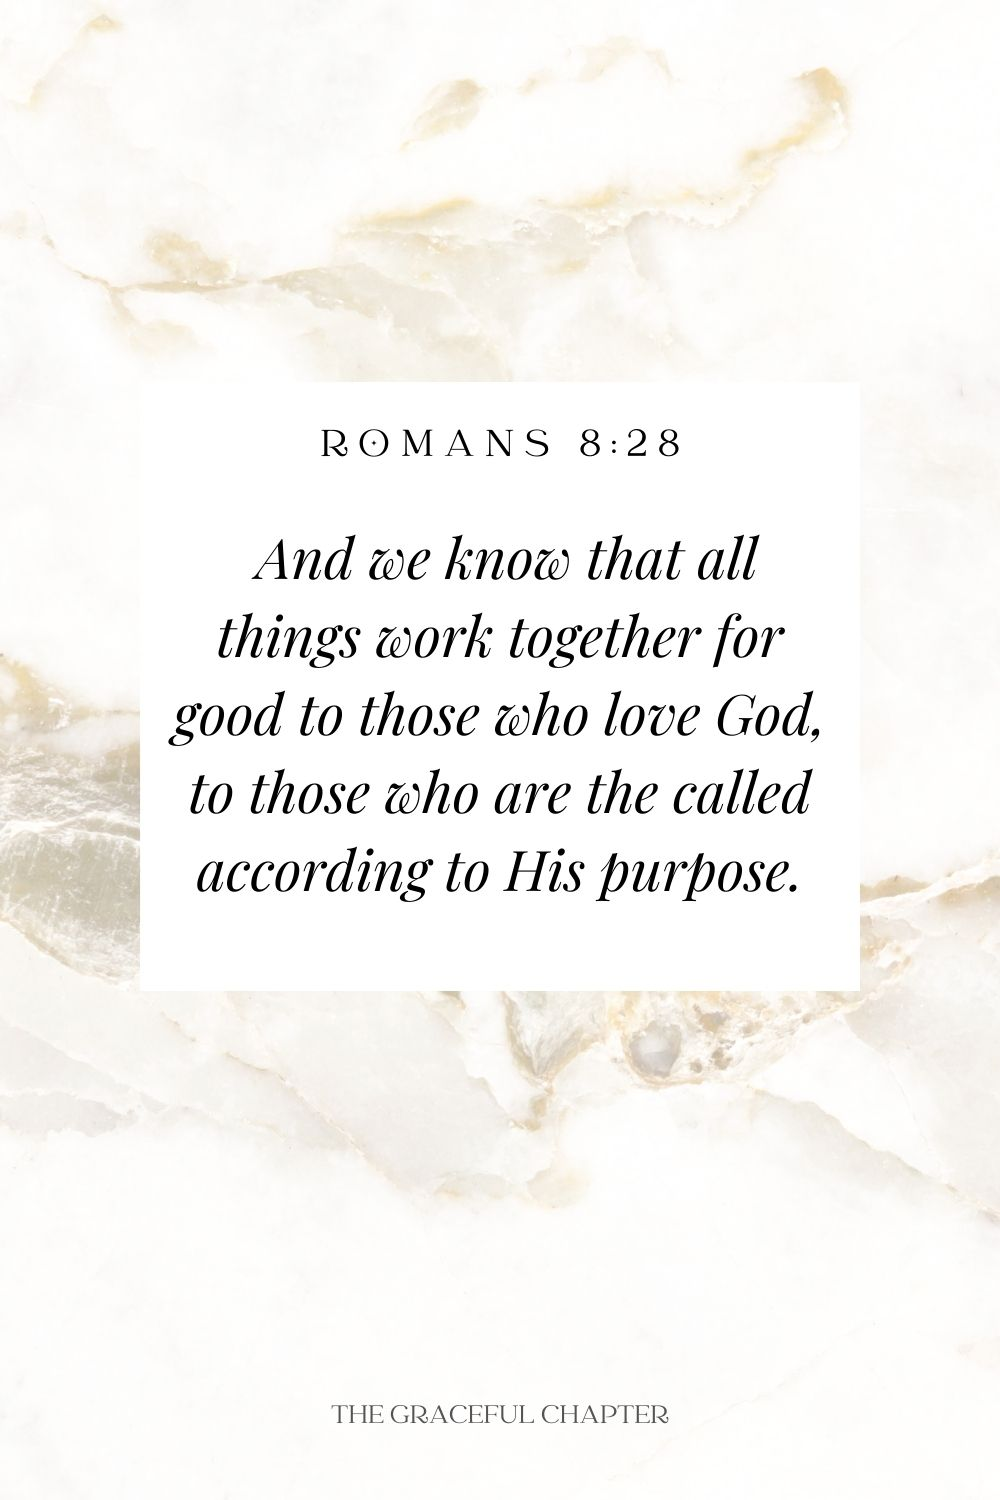 And we know that all things work together for good to those who love God, to those who are the called according to His purpose